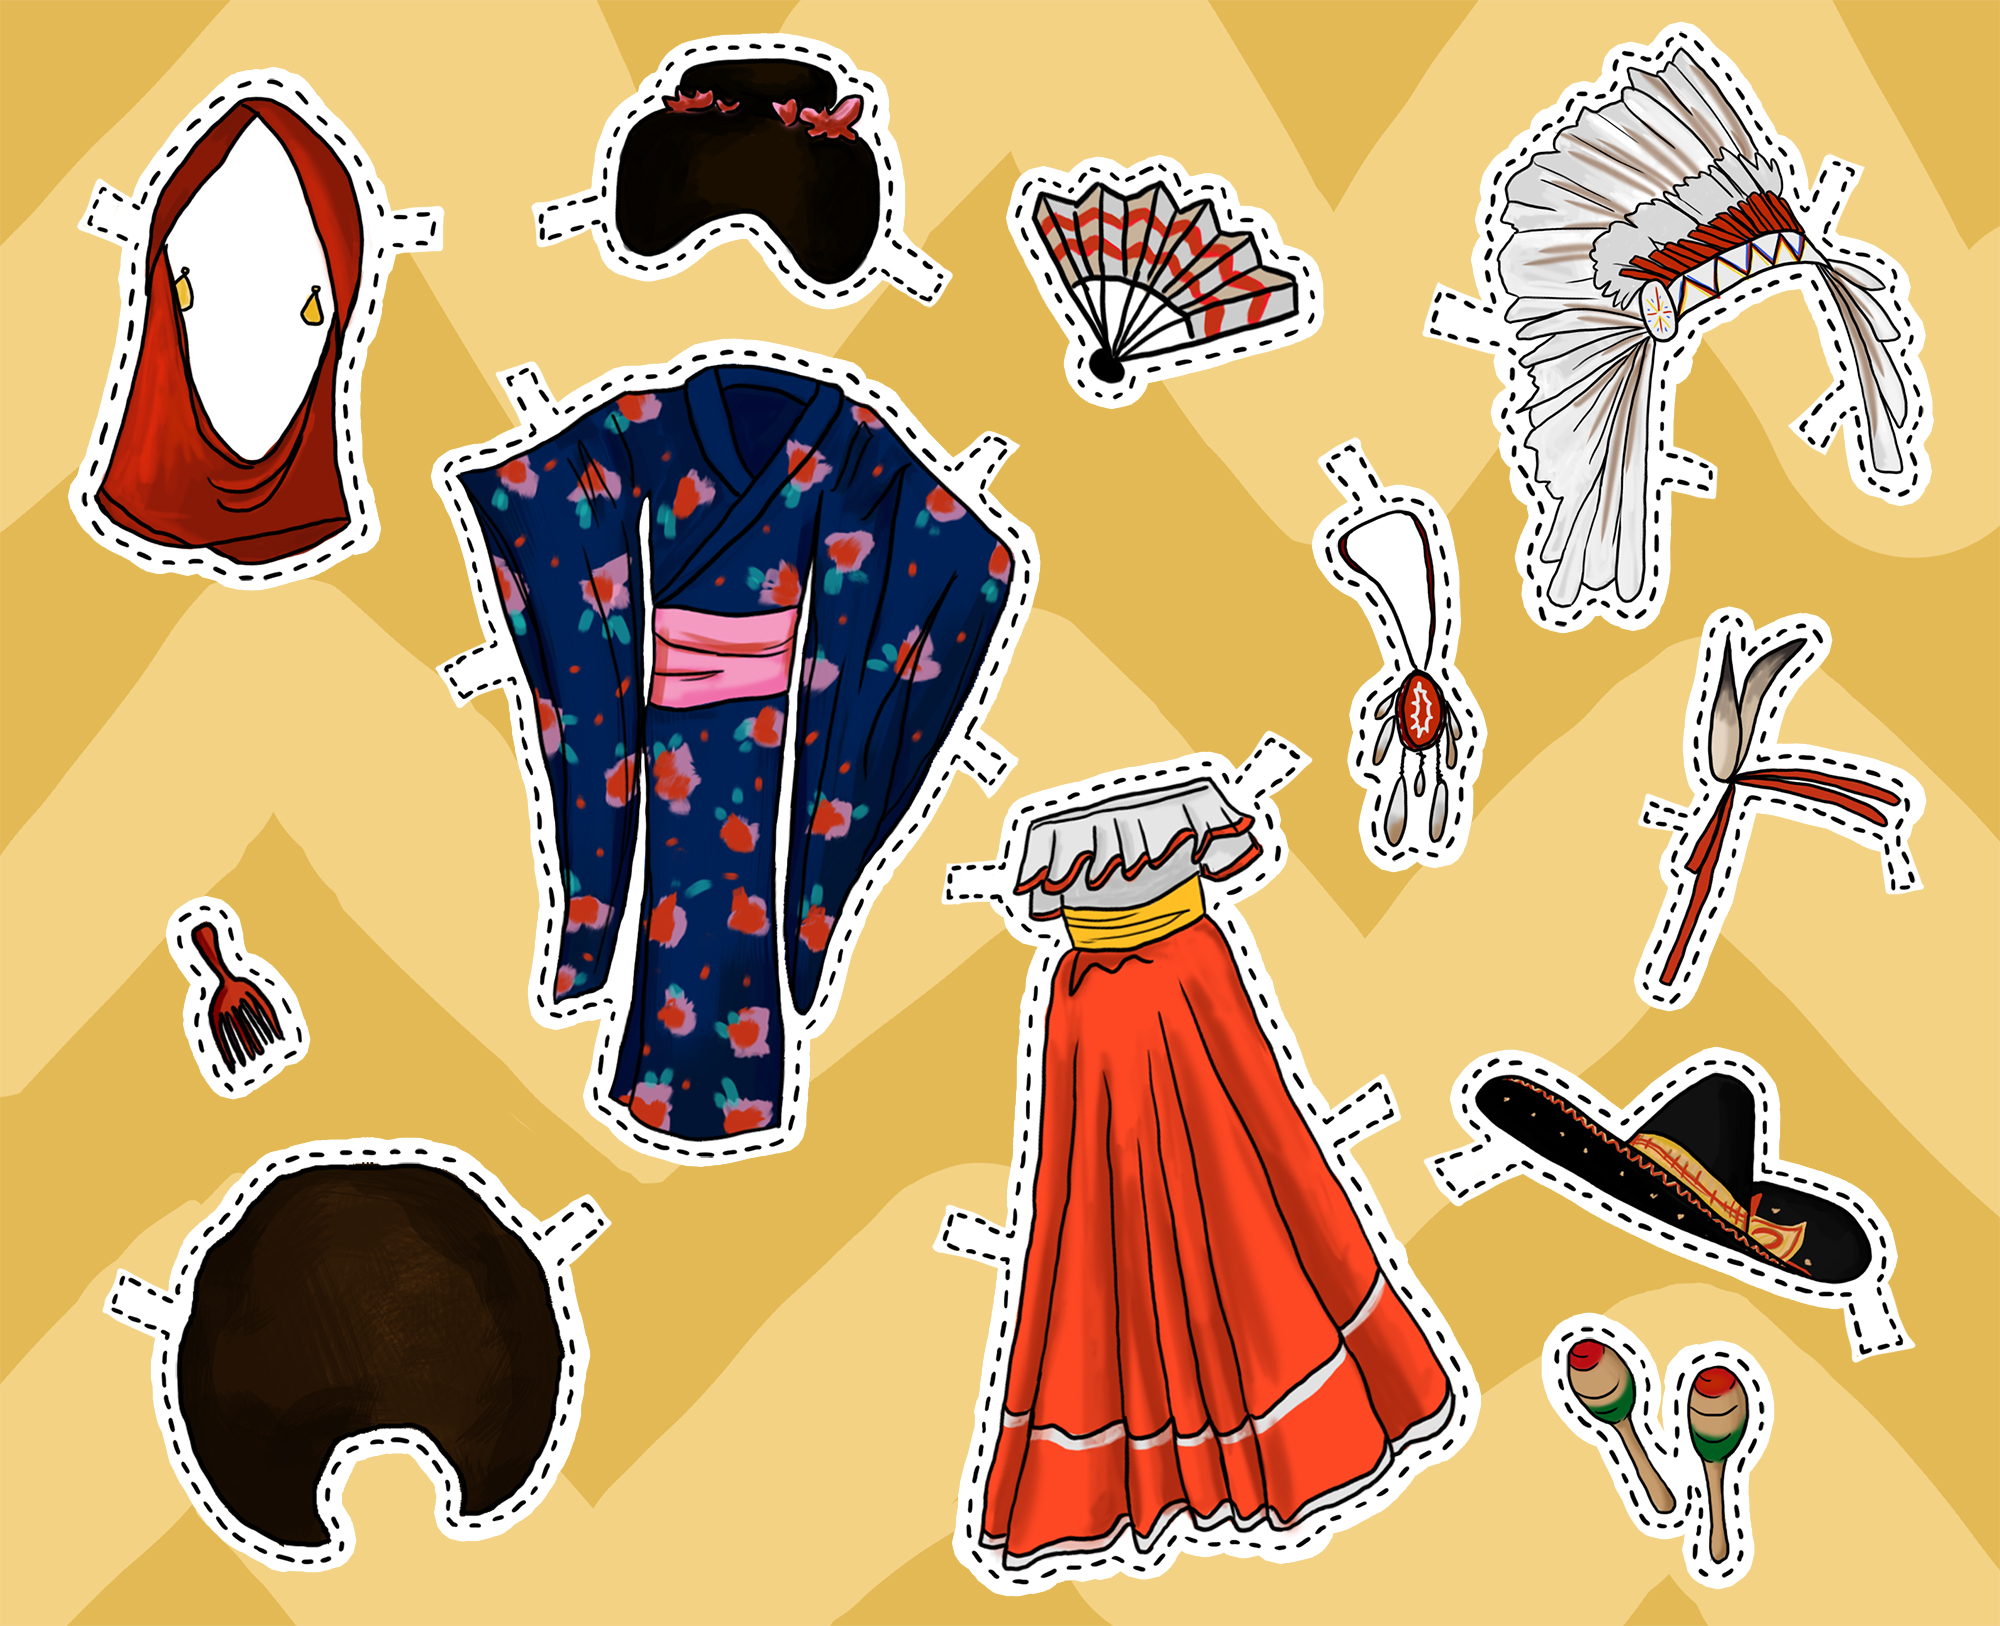 An illustration to accompany an article about cultural appropriation in Halloween costumes